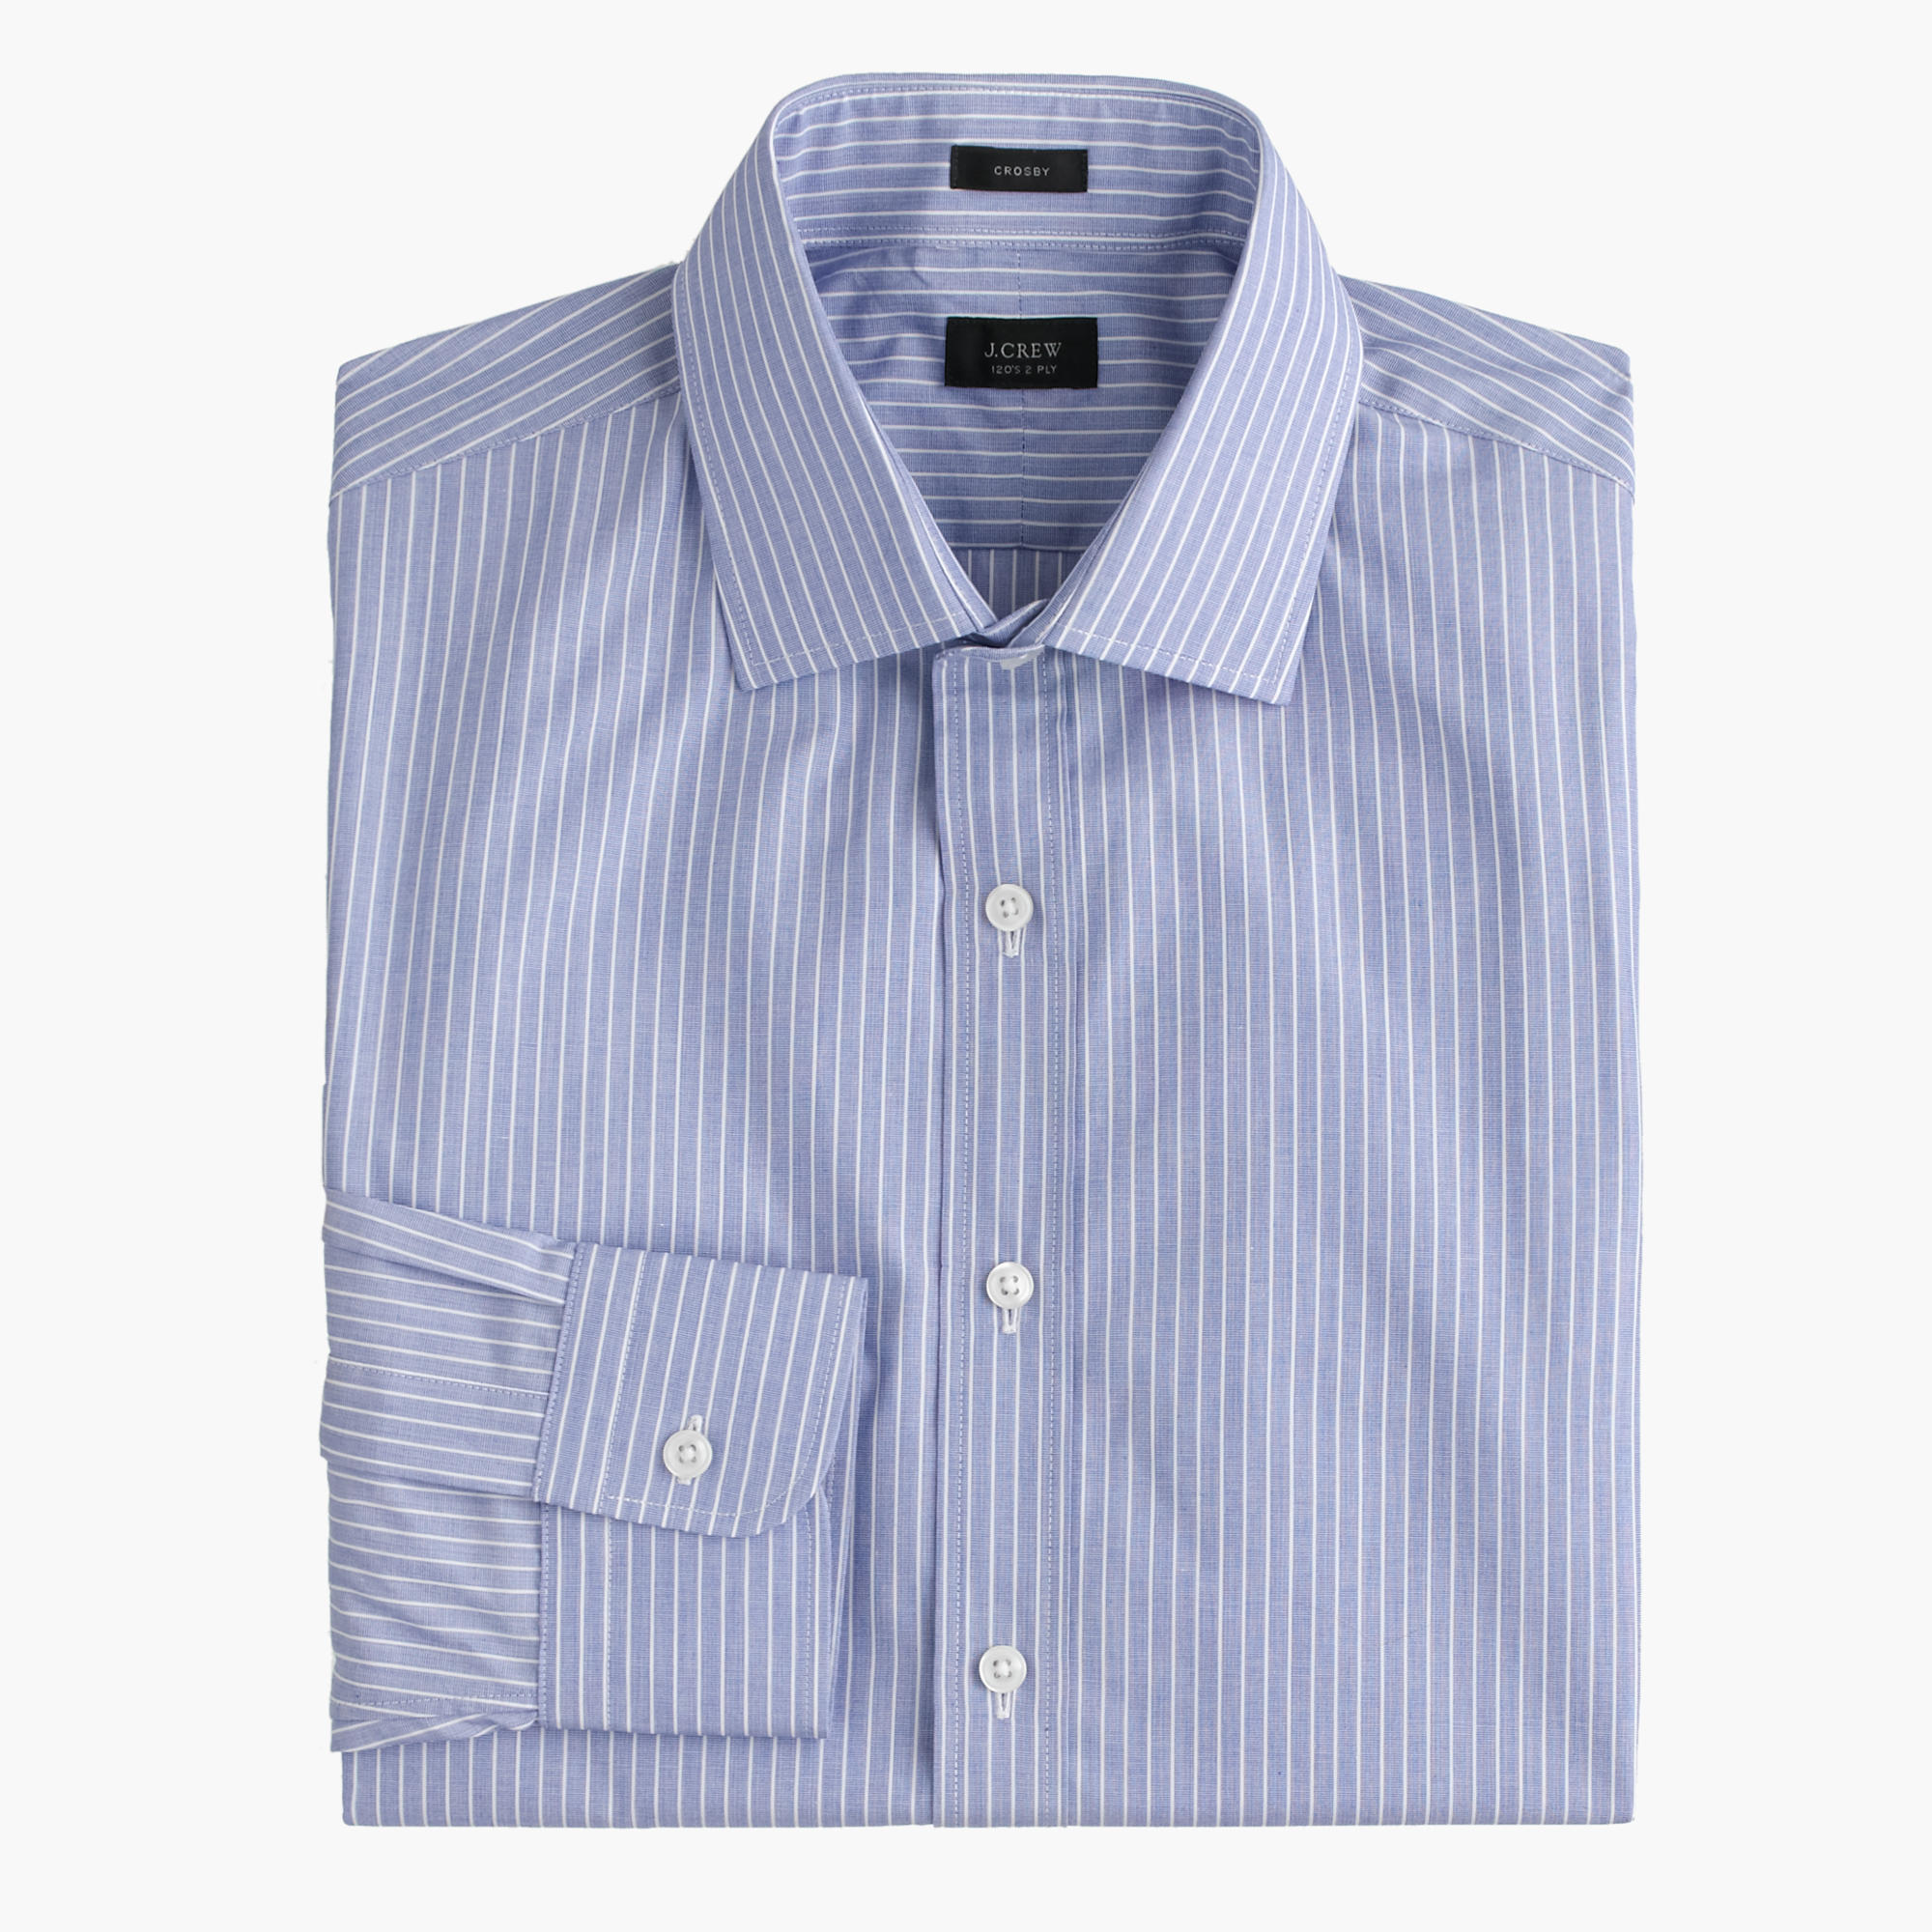 Crosby shirt in striped end on end cotton men crosby j for Dress shirts for athletic build